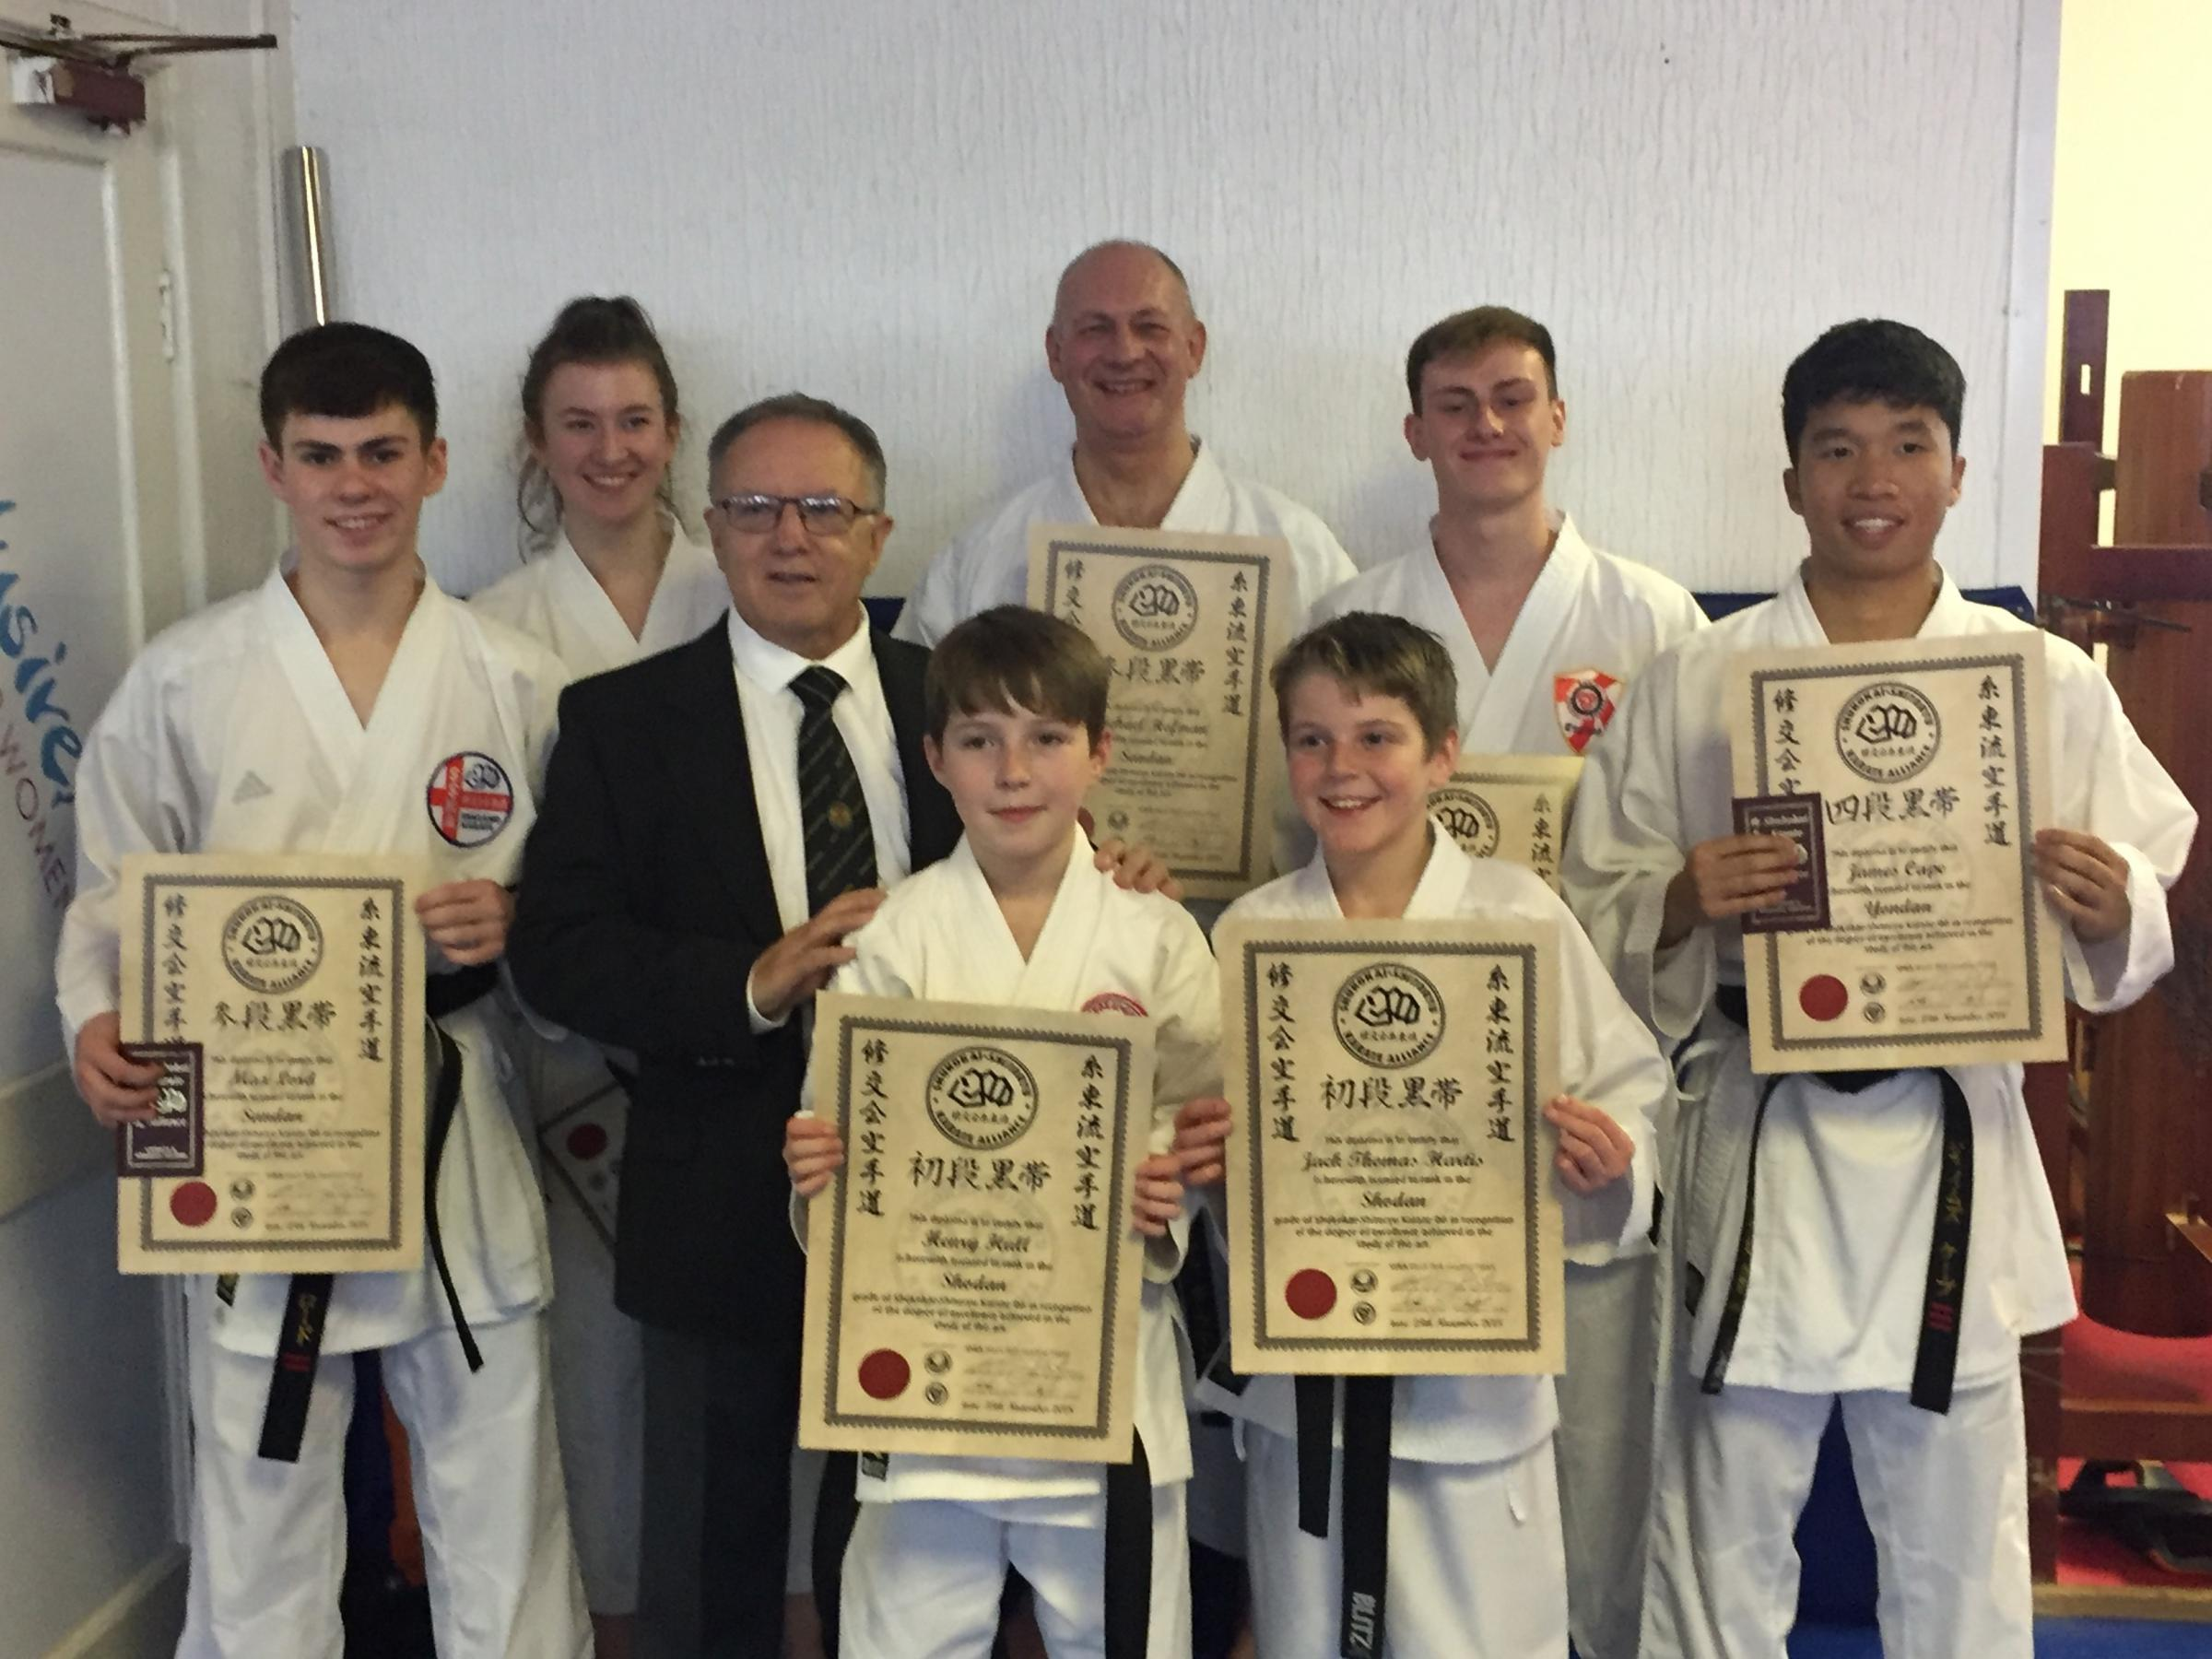 Otley and Harrogate karate centres were successful at a grading in Cheshire. Picture in the front, from left, are Shihan Ken Gee, Henry Hull and Jack Hartis. In the back are Max Lord, Natalie Hofman, Mike Hofman, Cameron Lord and James Cape